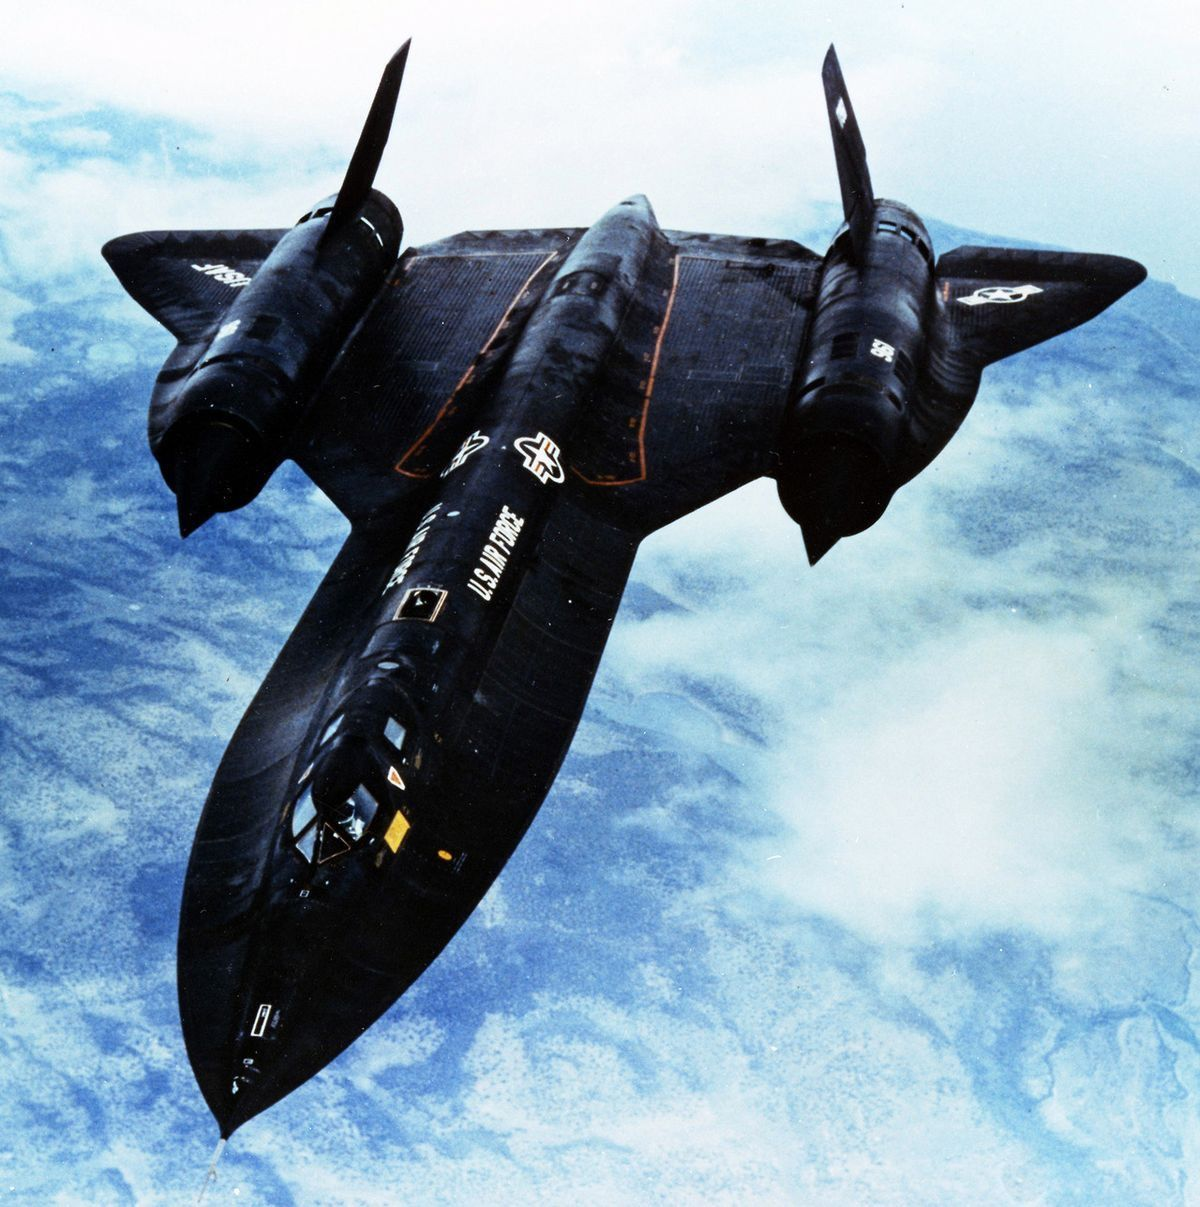 SR-71 Blackbird Cold War-Era Speed Demon, able to fly at ...